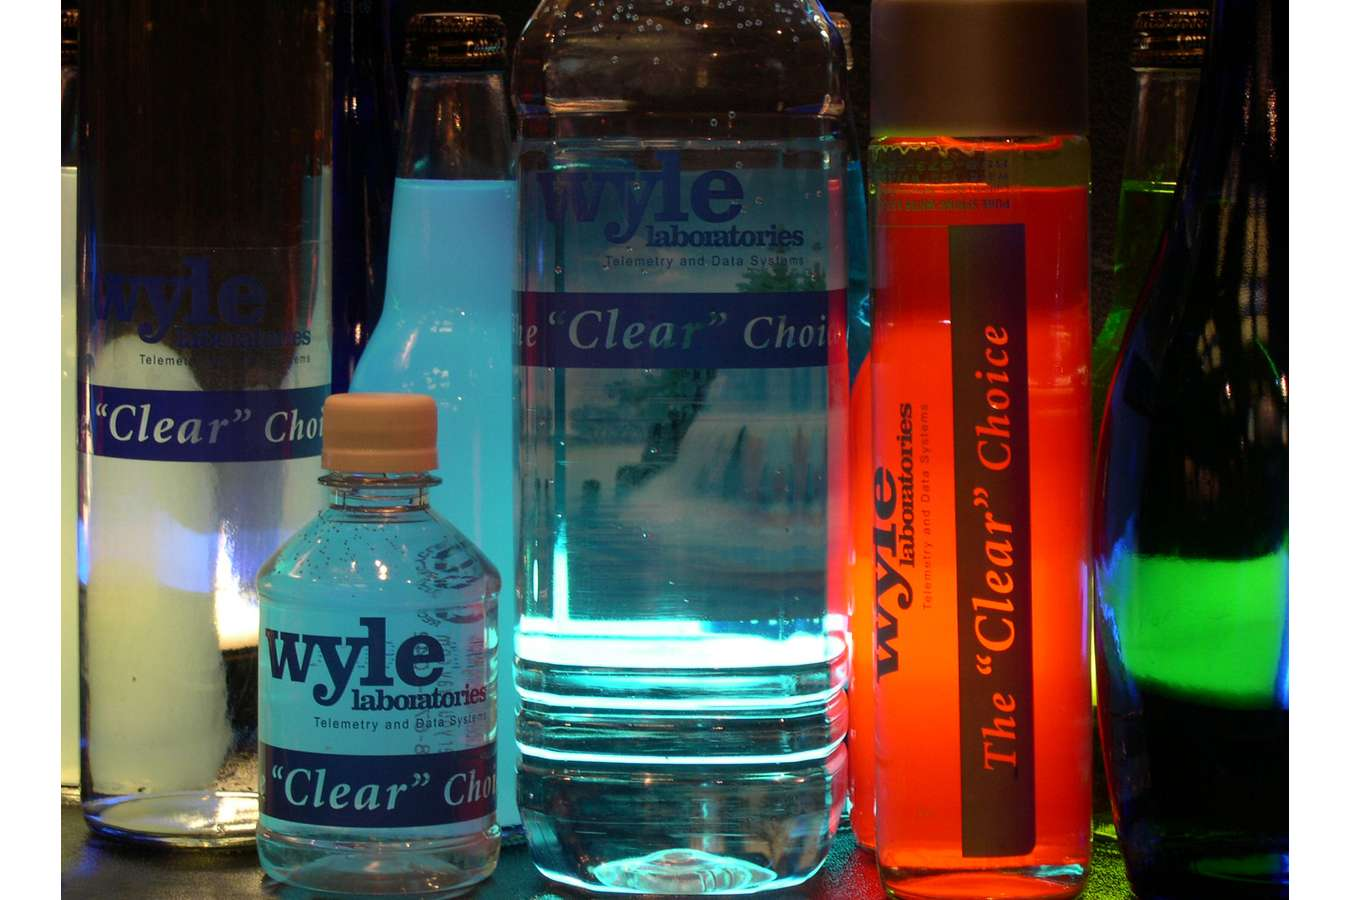 Wyle water 2 : Clear Choice Bar event